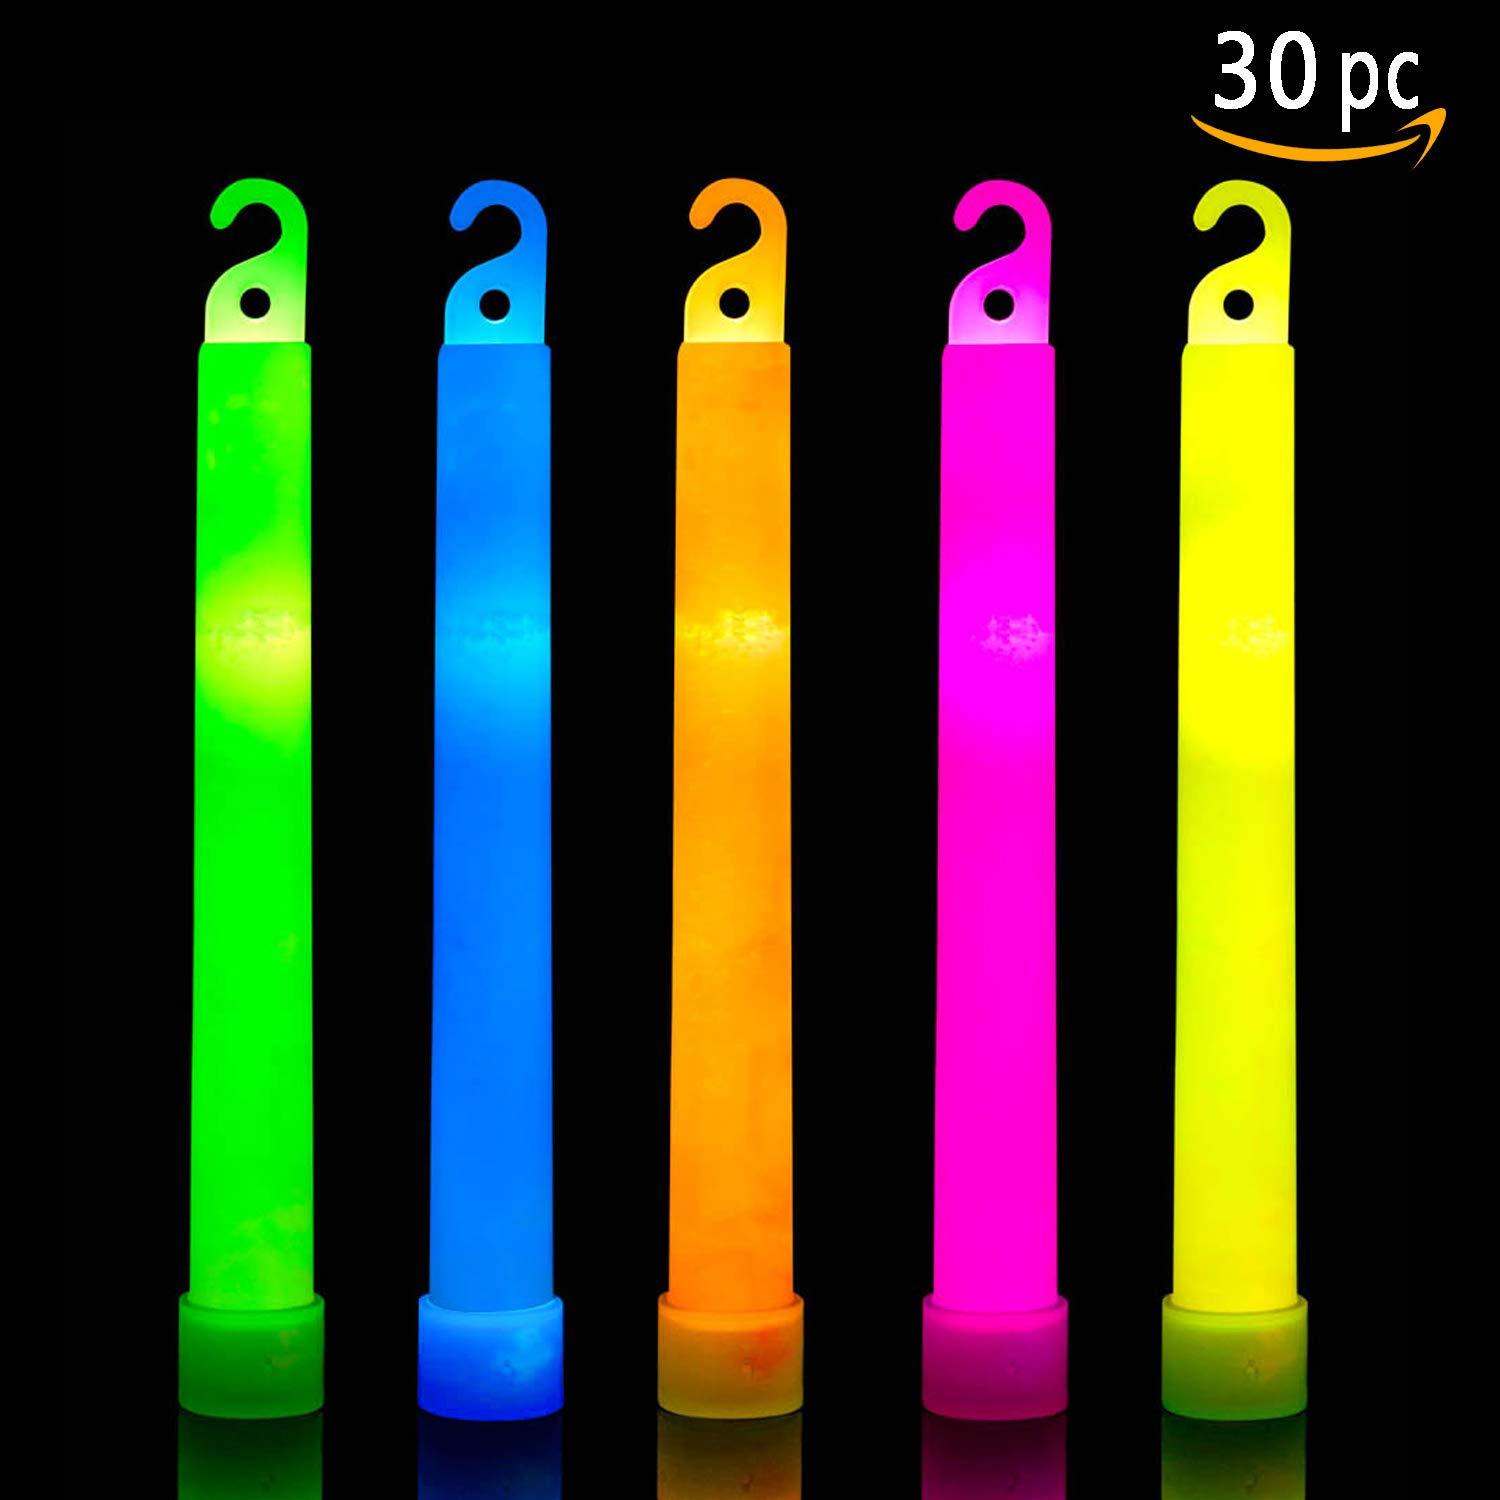 30 Ultra Bright Glow Sticks Plus 30 Party Strings - Total 60 Pcs - Bulk Pack Industrial Grade - 6 Inch Waterproof Glow Stick - Glow Light With 12 Hour Duration - Mixed Colors - Bend, Shake To Activate by HSGUS (Image #1)